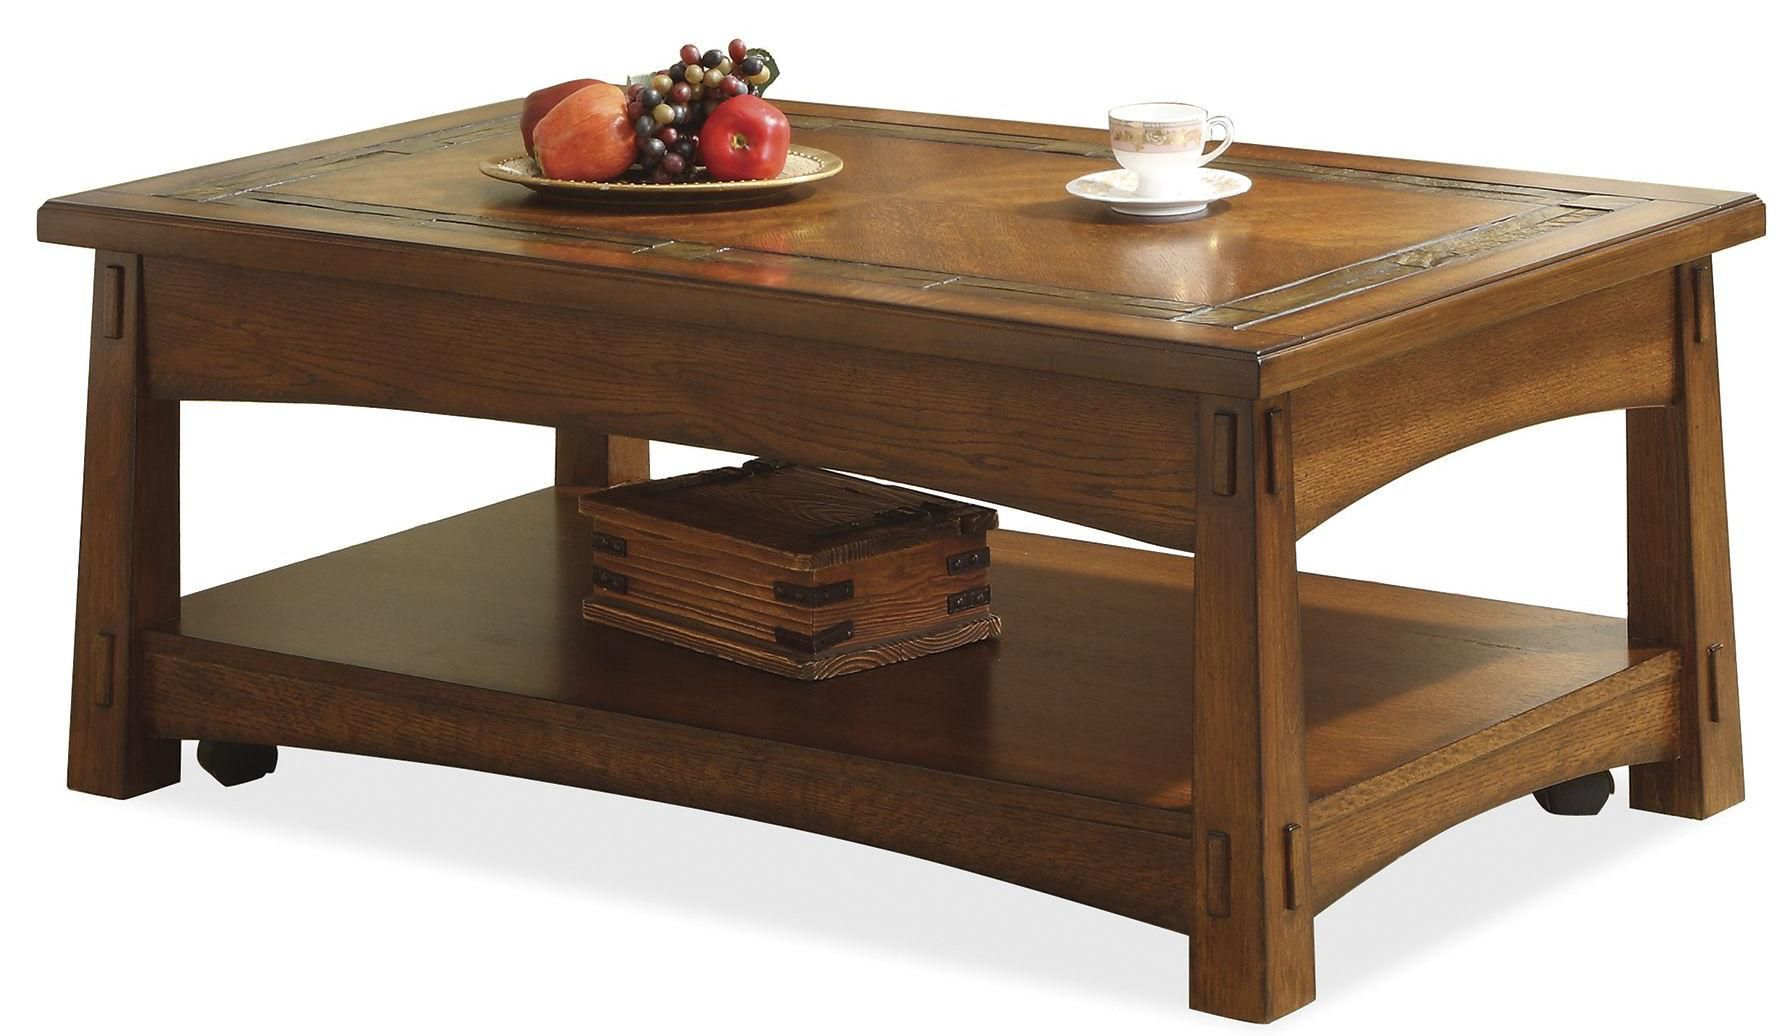 Craftsman Home Lift Top Coffee Table By Riverside Furniture Coffee Table Home Coffee Tables Riverside Furniture [ 1036 x 1789 Pixel ]